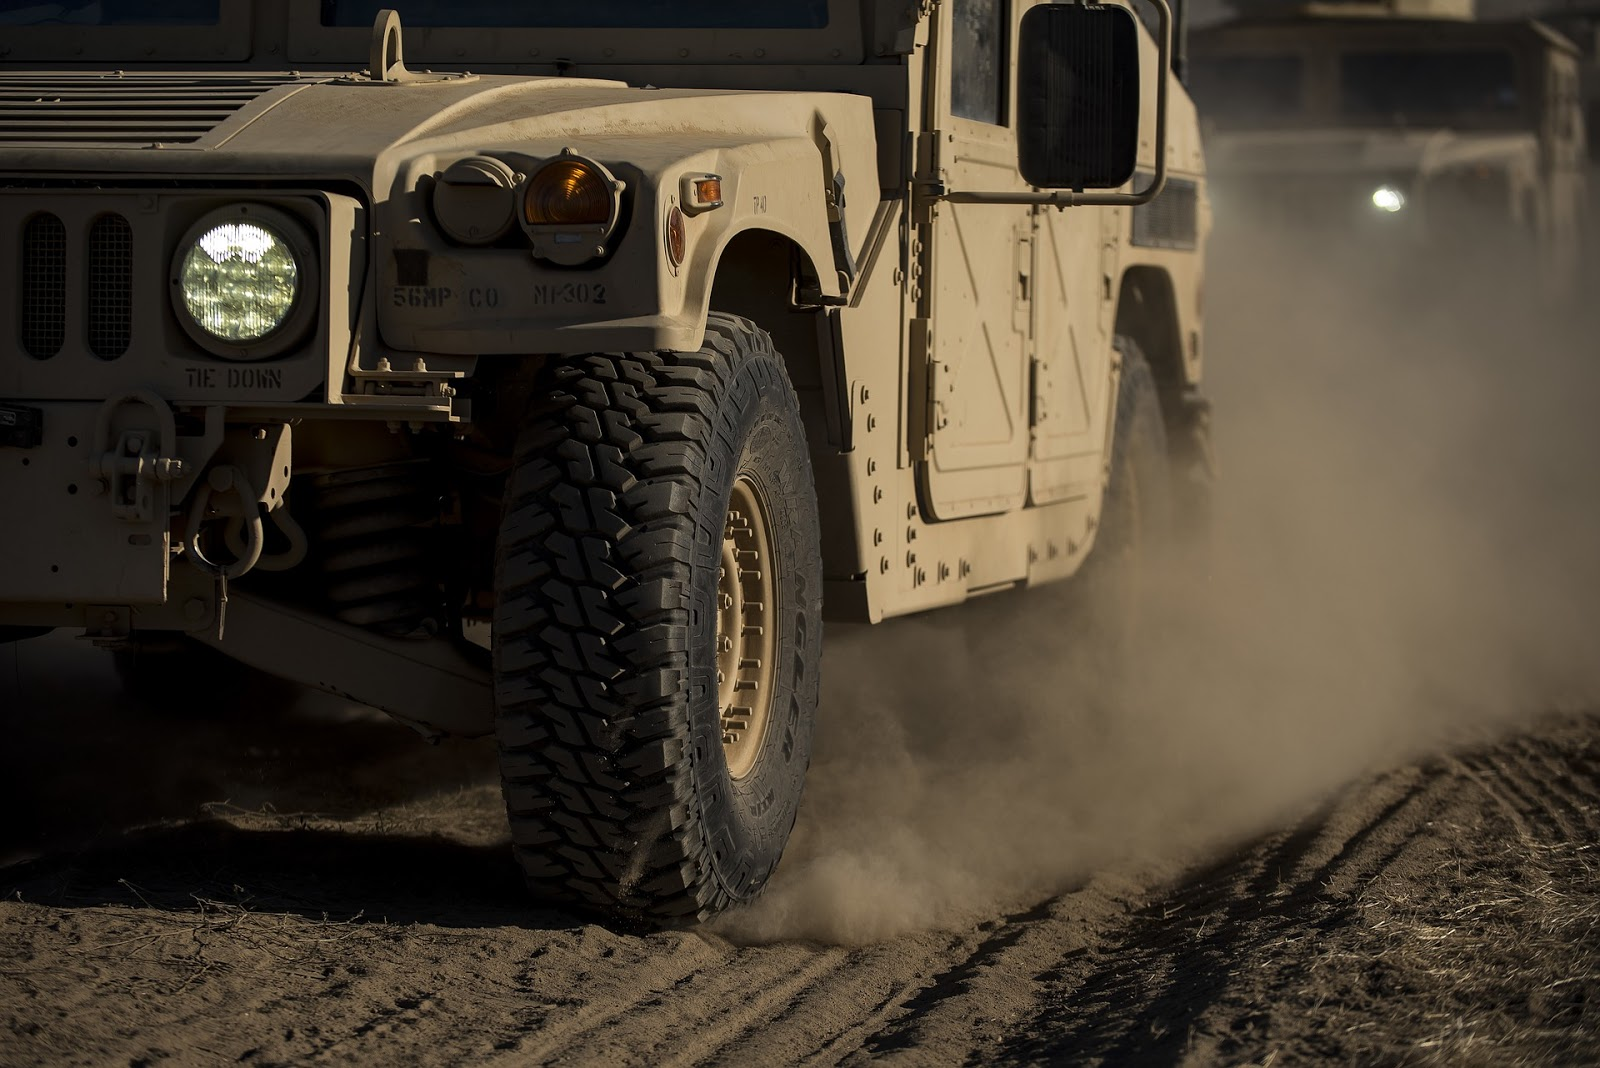 a military humvee drives down a dirty road to illustrate a blog post about the mini-series generation kill